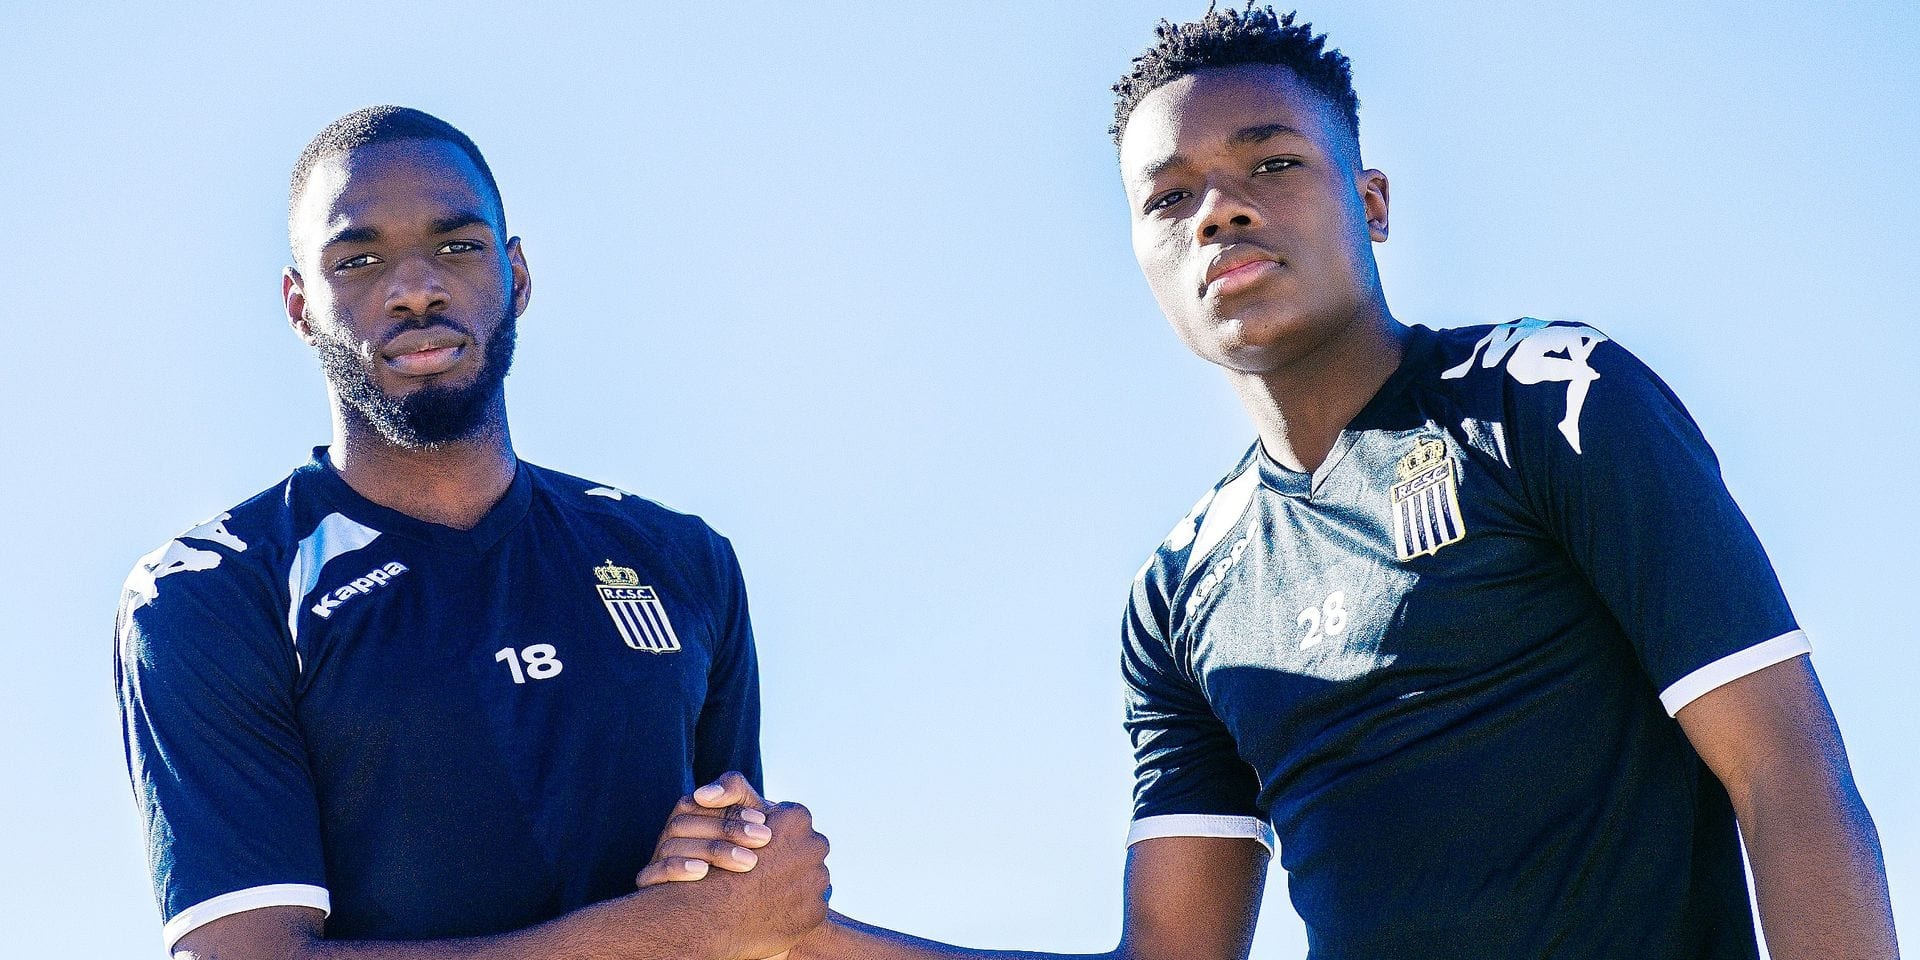 Charleroi's Messie Biatoumoussoka and Charleroi's Ken Nkuba pose for the photographer on the fifth day of the winter training camp of Belgian first division soccer team Sporting Charleroi, in Valencia, Spain, Wednesday 09 January 2019. BELGA PHOTO LAURIE DIEFFEMBACQ